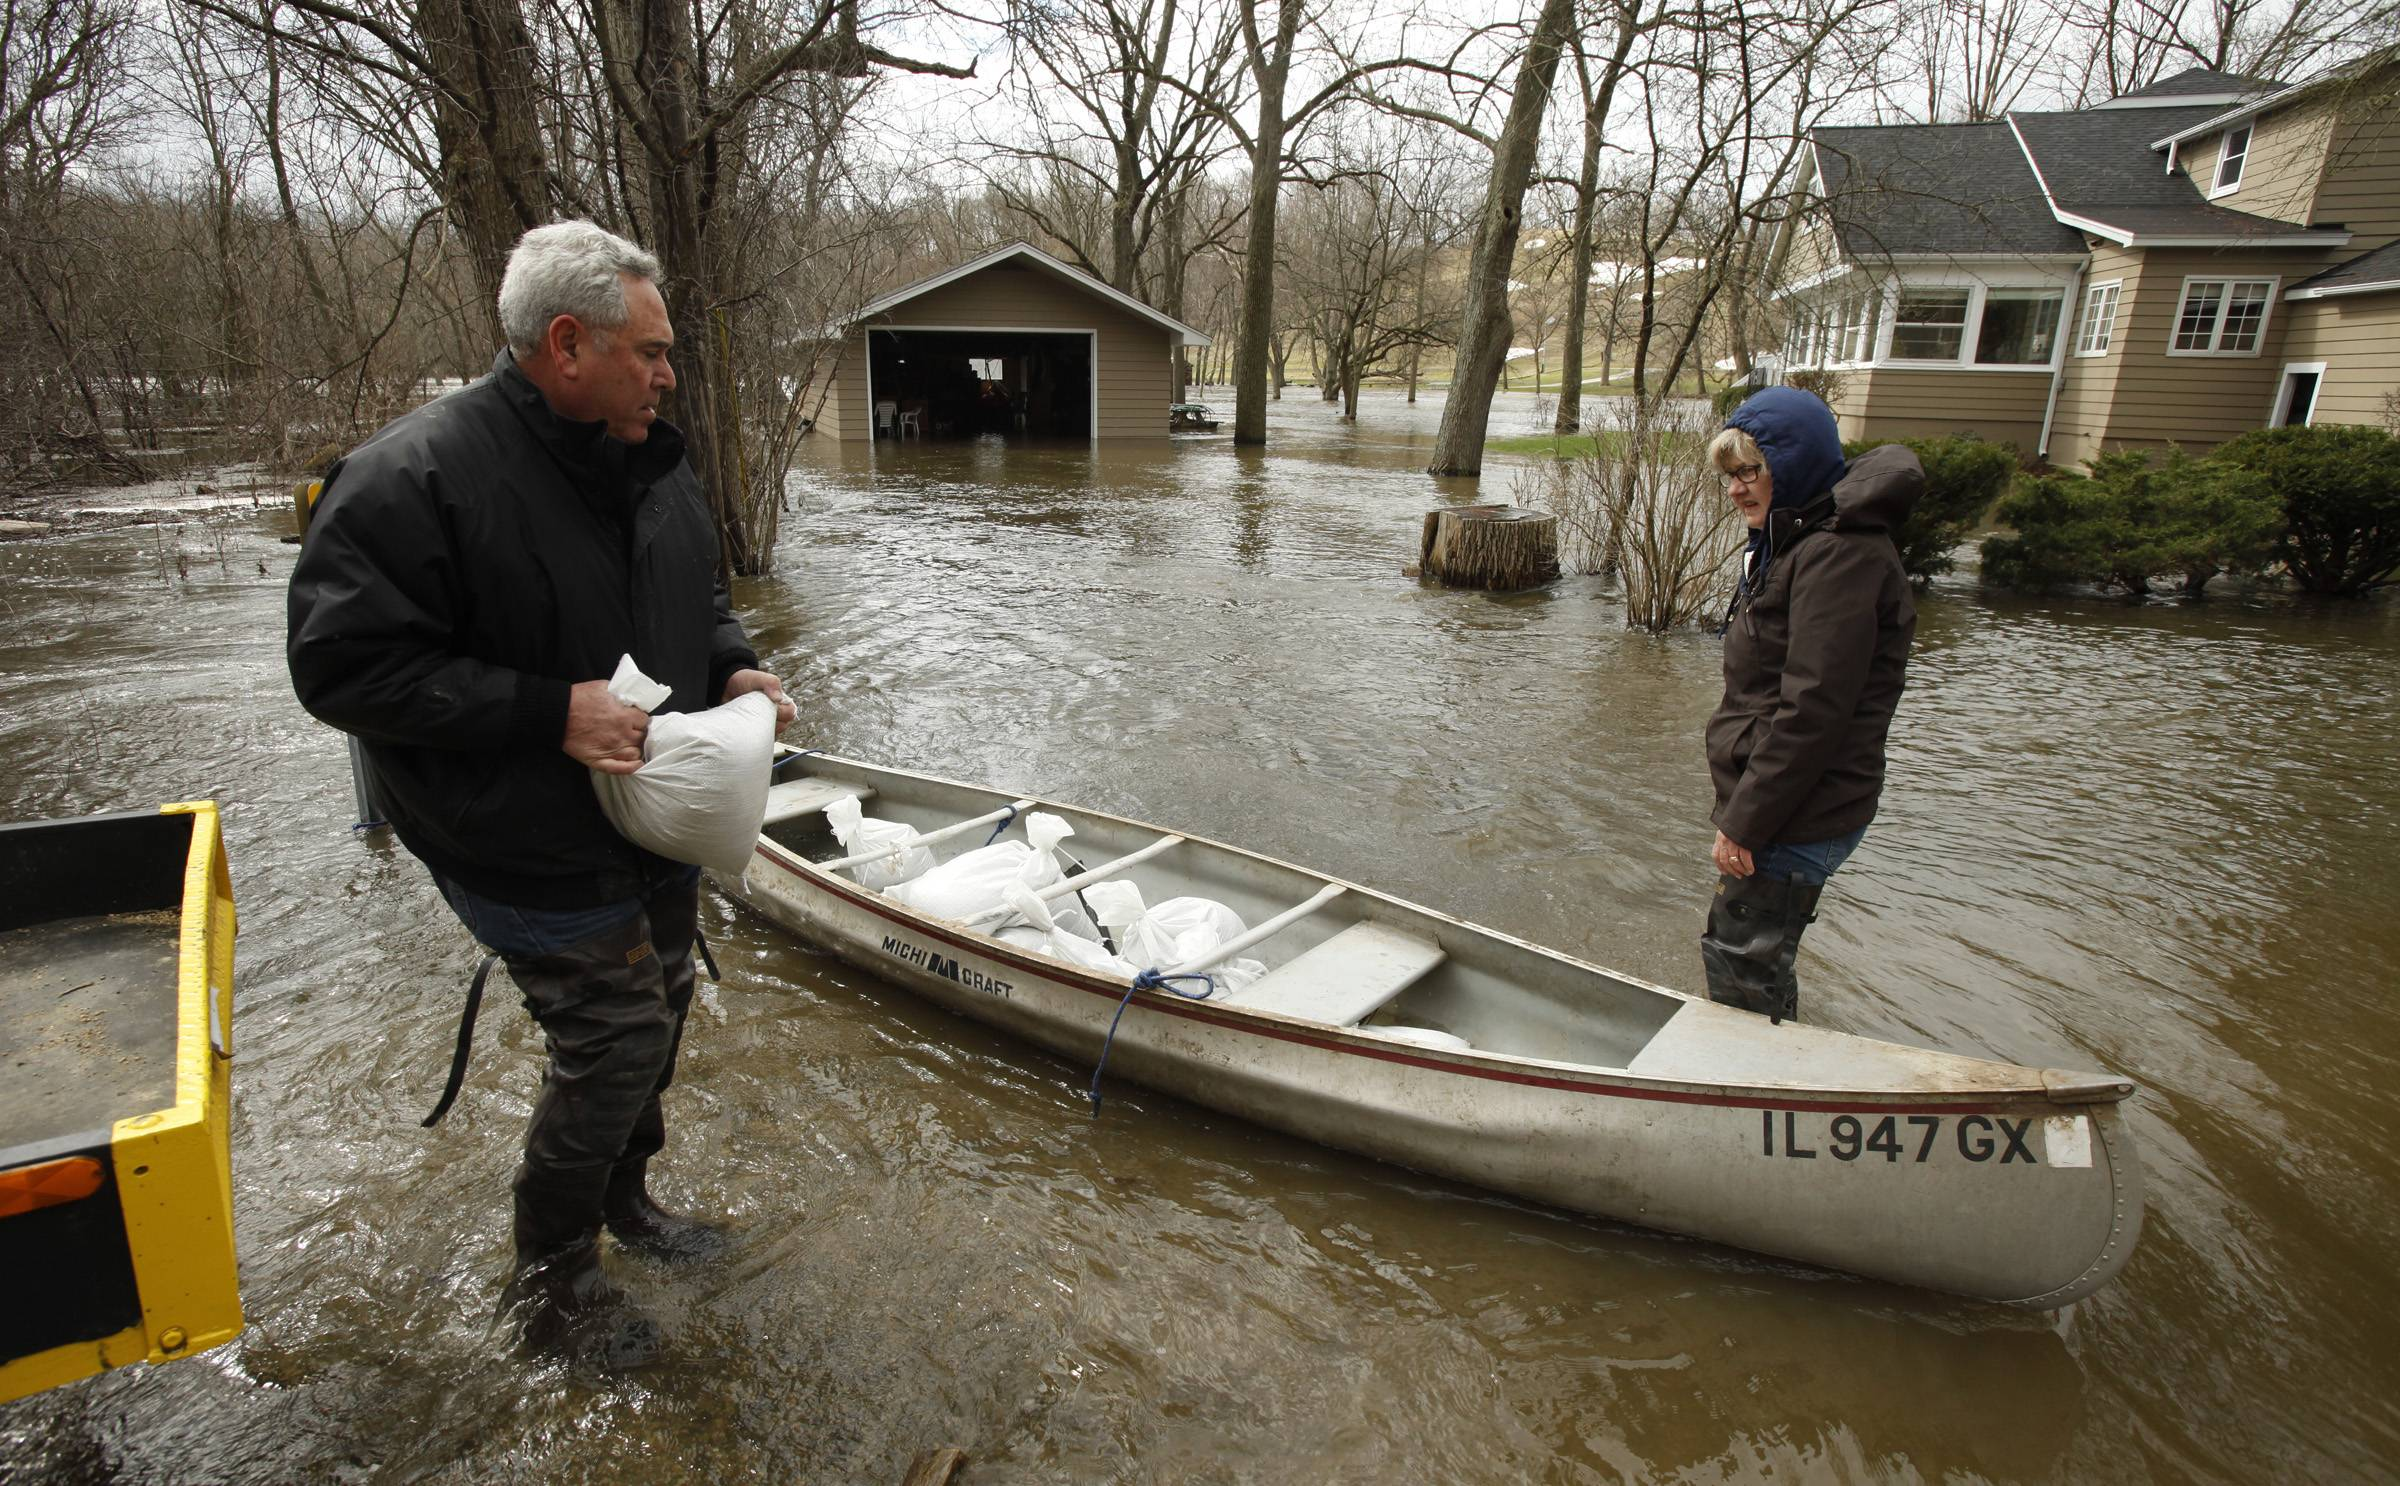 Nick and Nan Gagliano of Algonquin load sand bags into a canoe to make it easier to get the to their home along the Fox River, seen in the background.